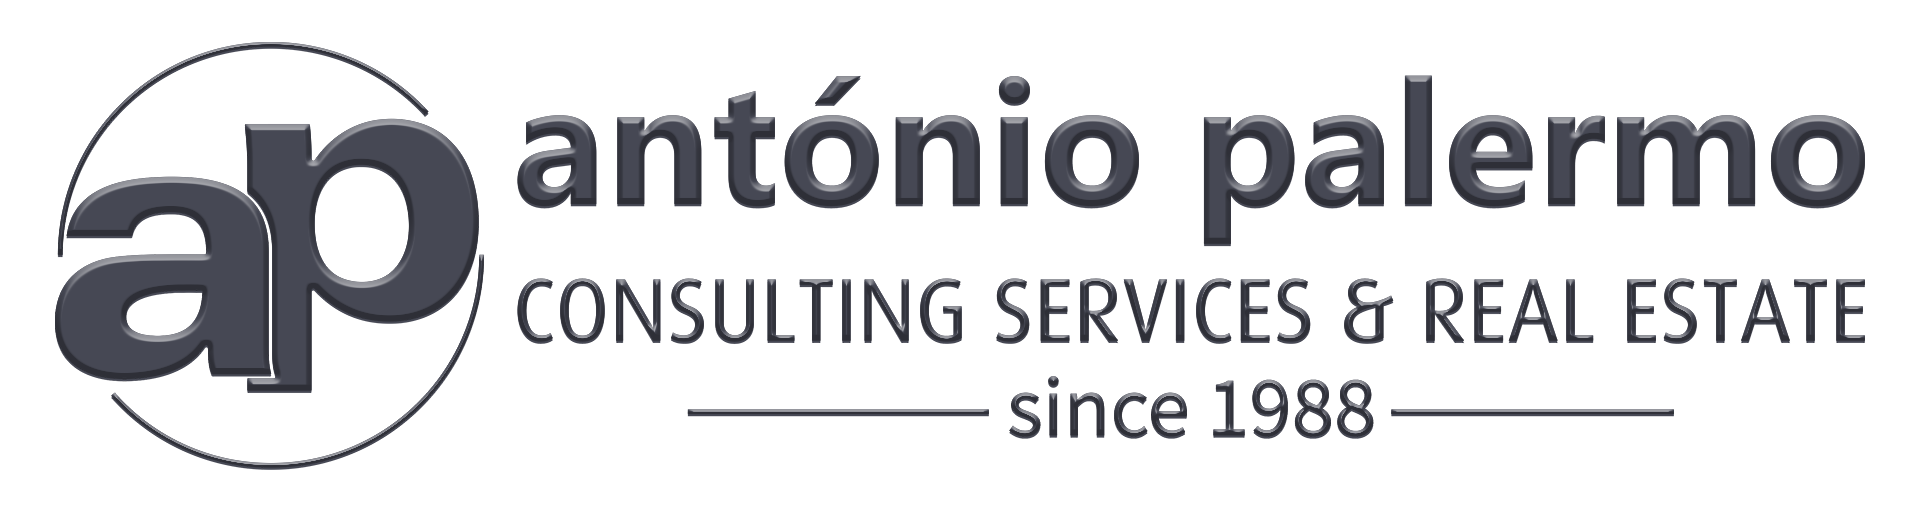 António Palermo - Consulting Services & Real Estate